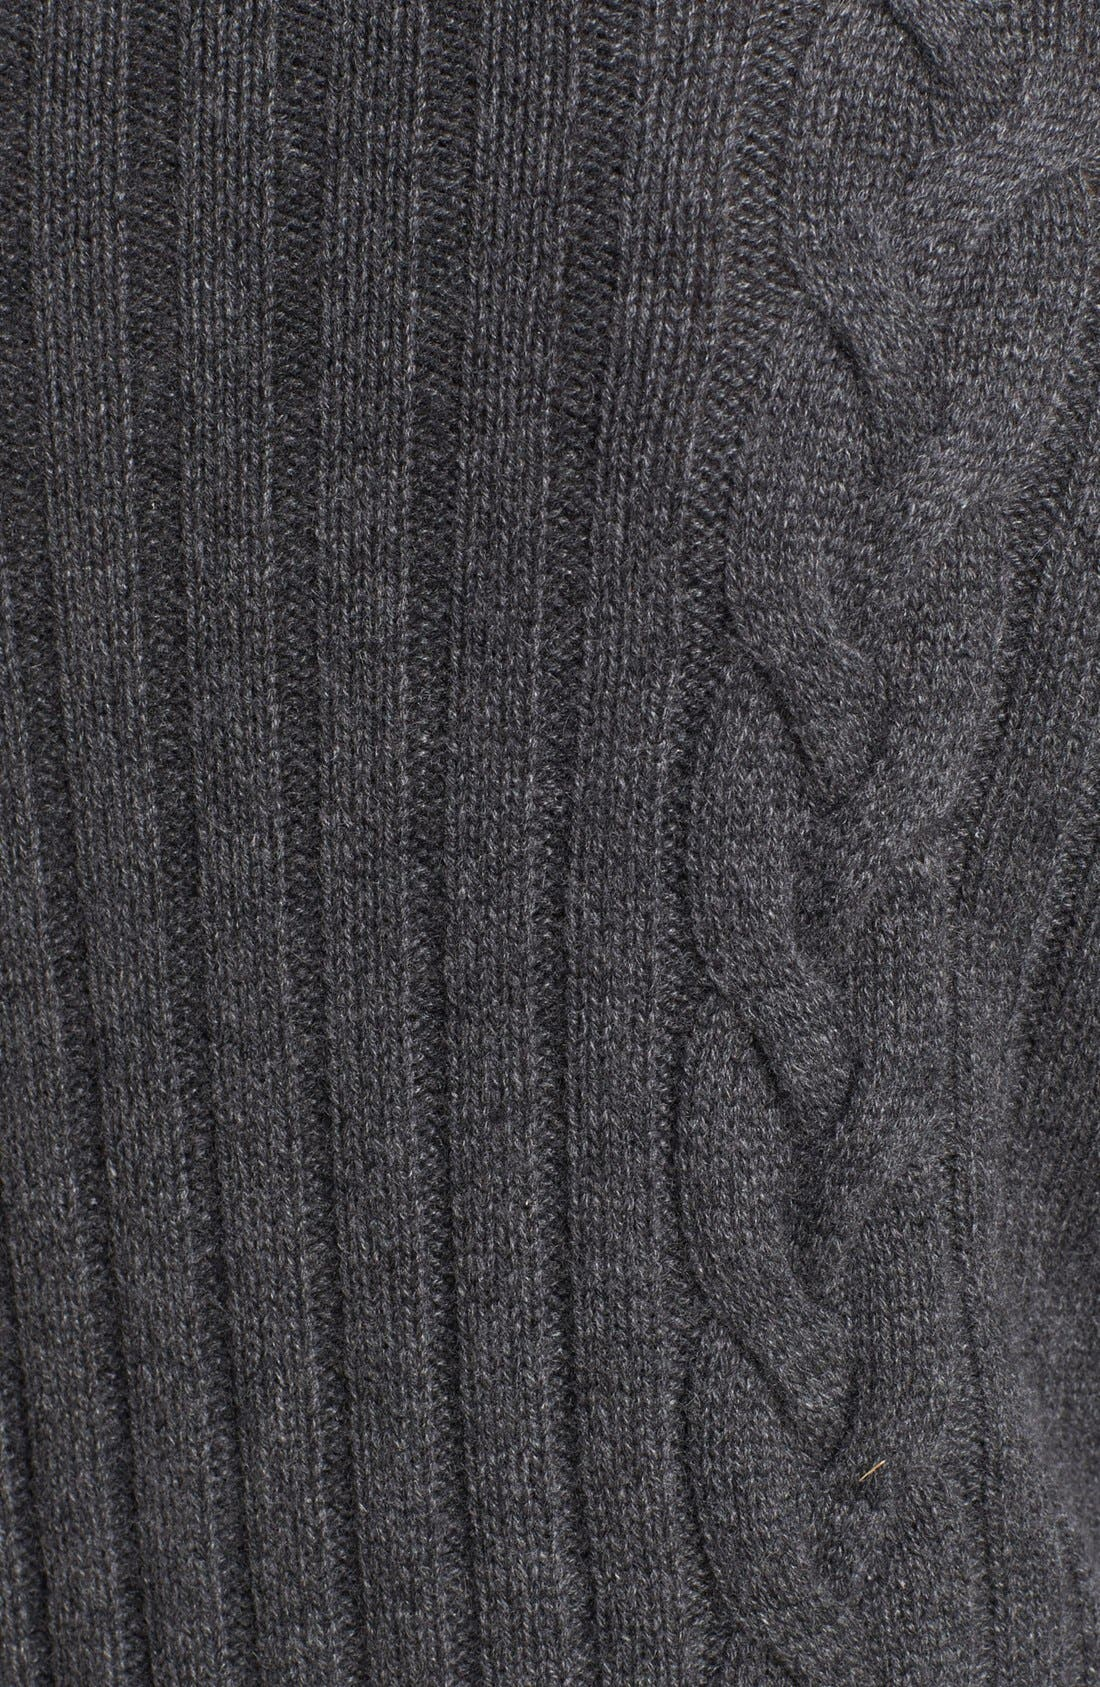 Chunky Cable Cashmere Cardigan,                             Alternate thumbnail 3, color,                             020